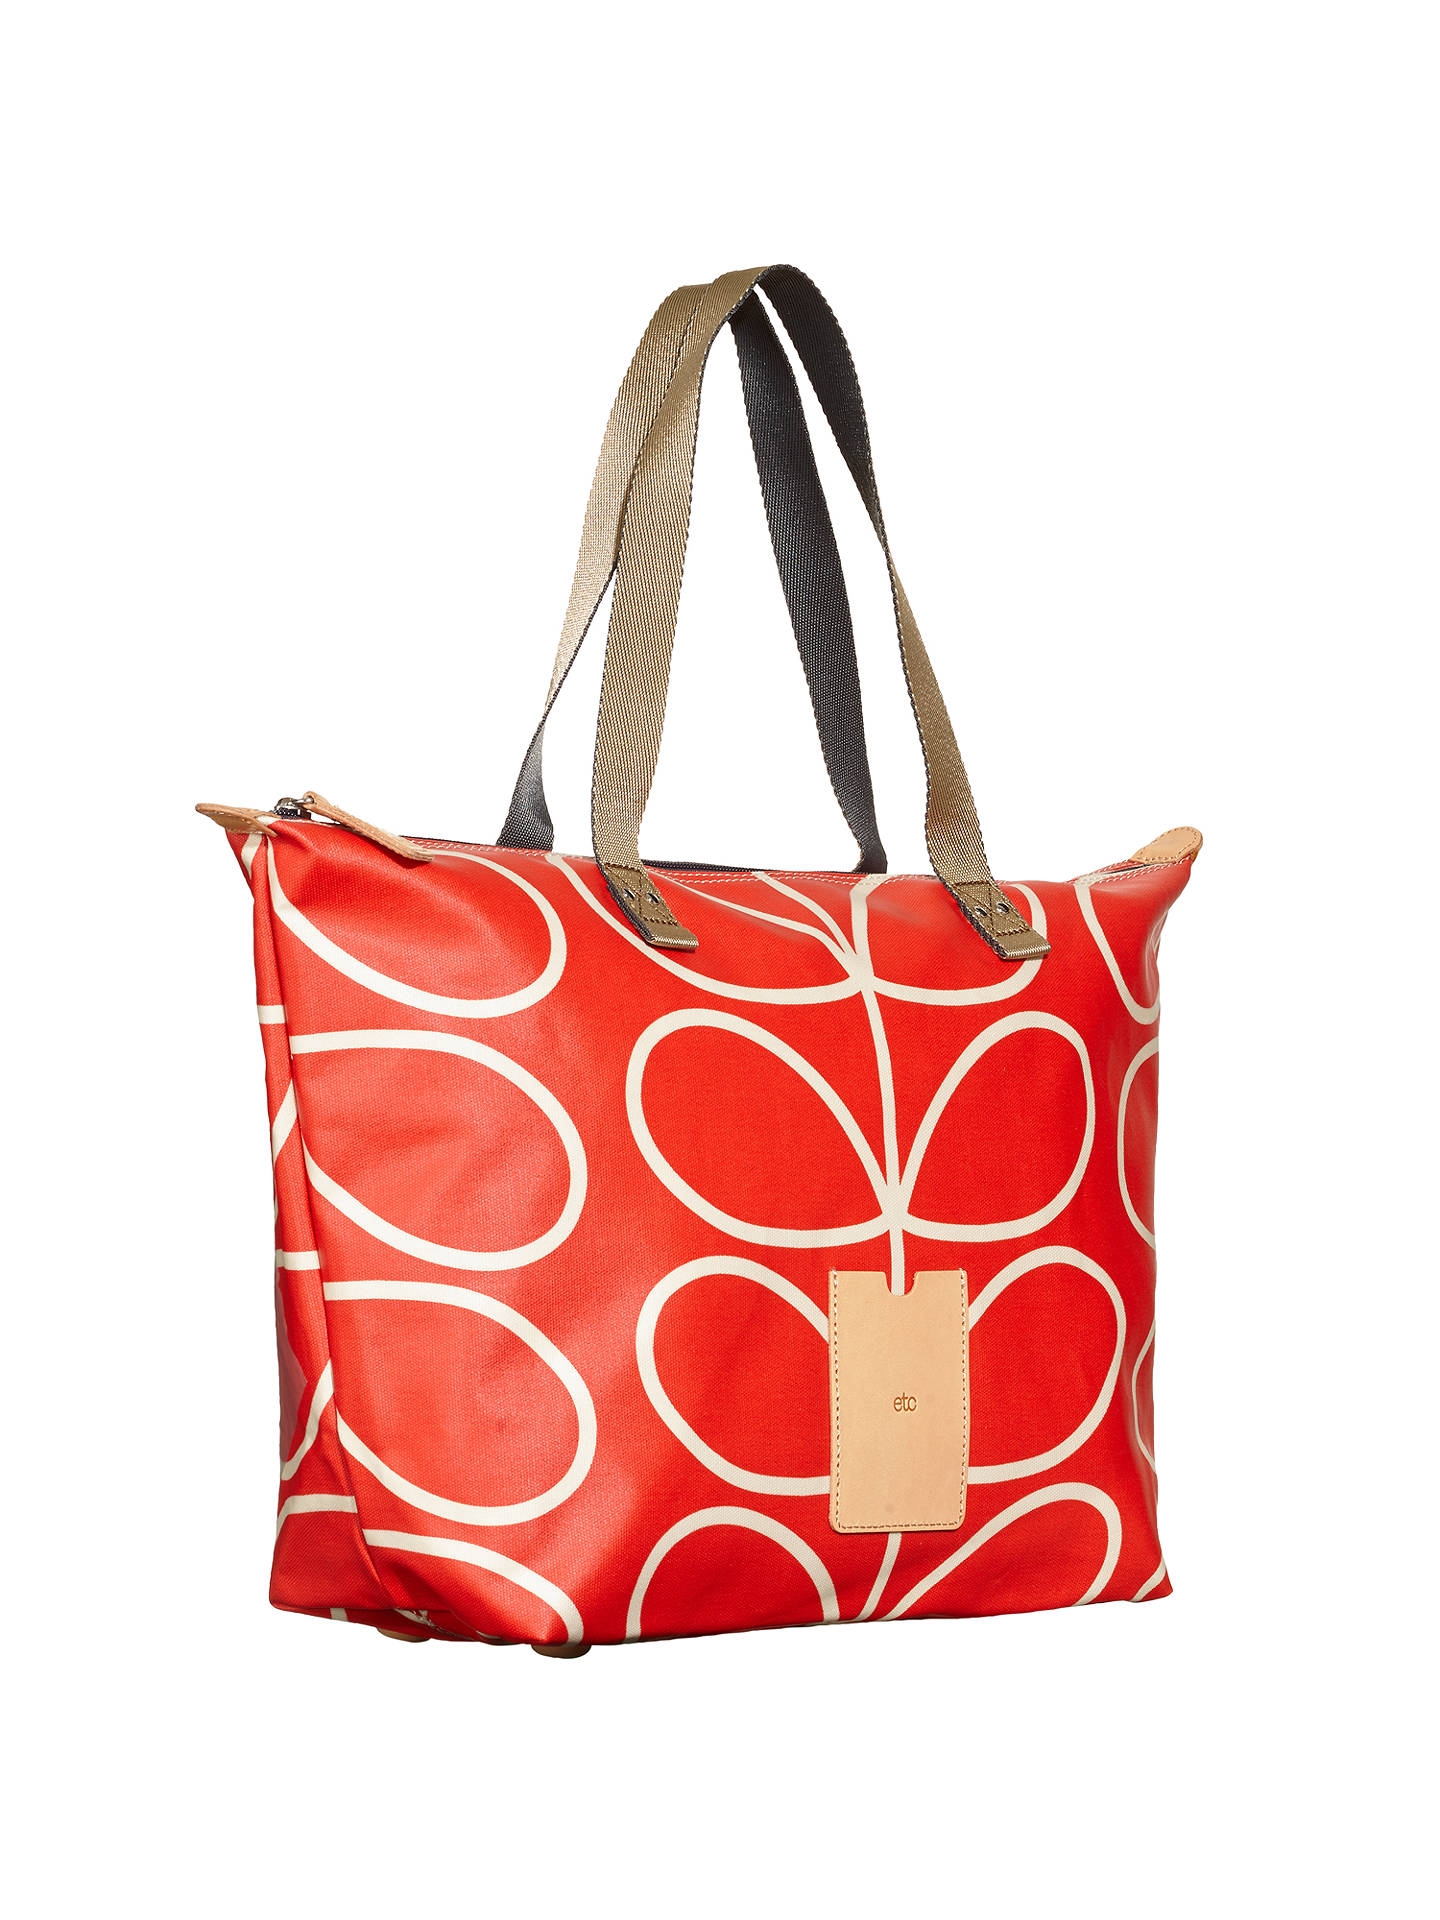 Orla Kiely Giant Linear Zip Per Bag Red At John Lewis